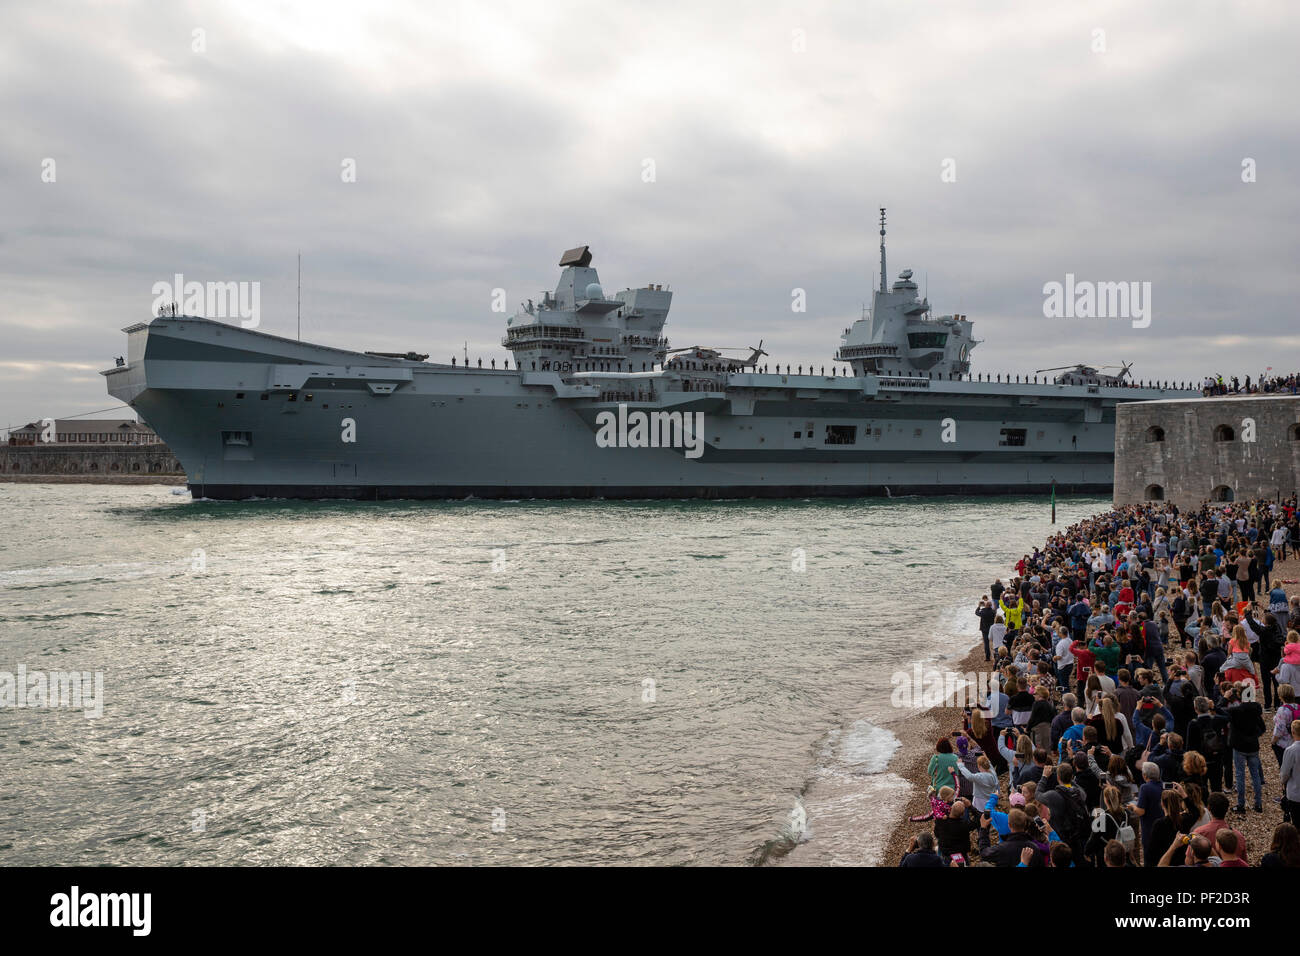 18 August 2018 Portsmouth, Hampshire UK Royal Navy Flagship HMS Queen Elizabeth leaving Portsmouth for her latest sea trials - Stock Image